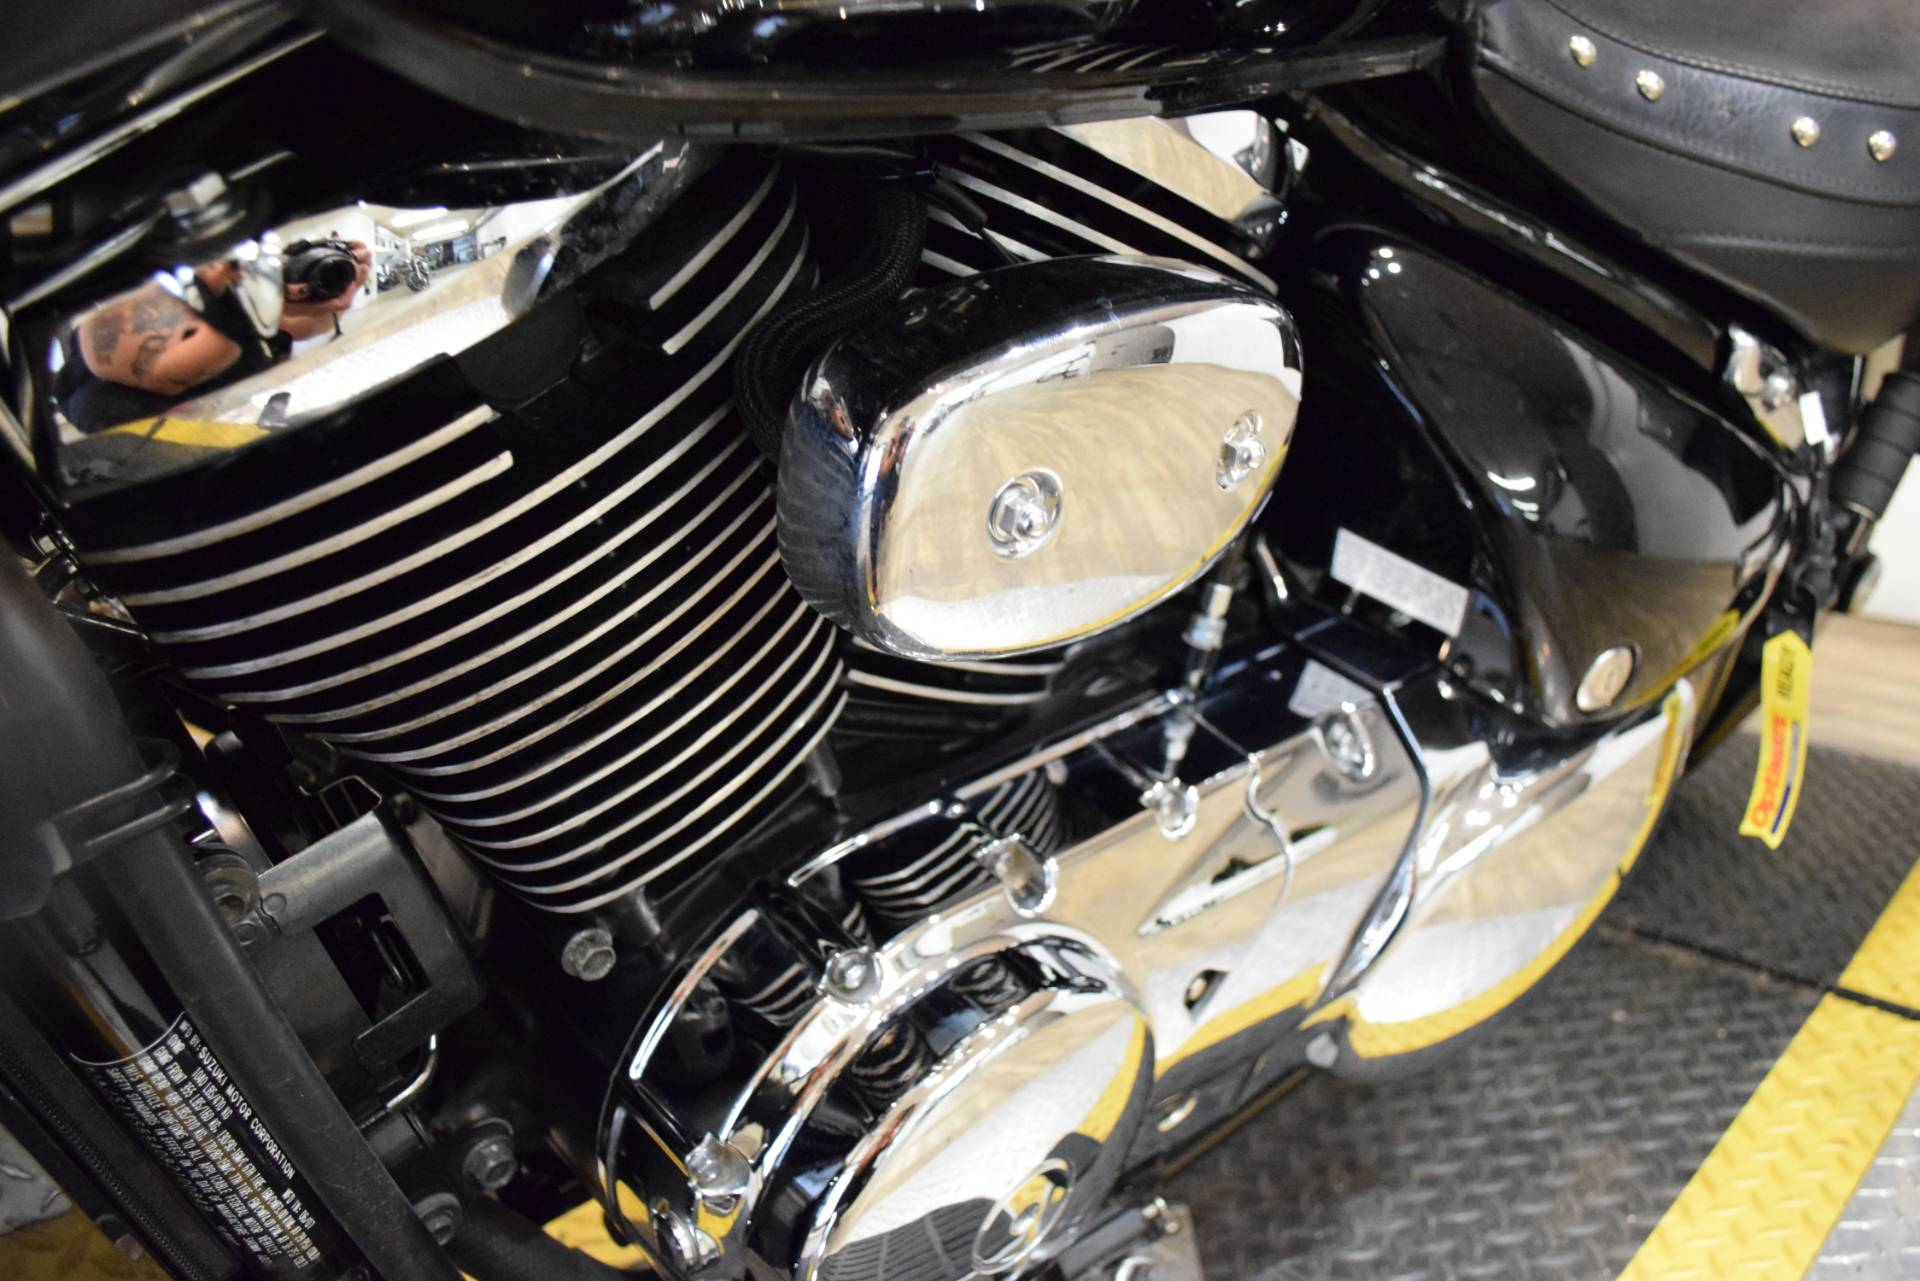 2008 Suzuki Boulevard C50T in Wauconda, Illinois - Photo 21